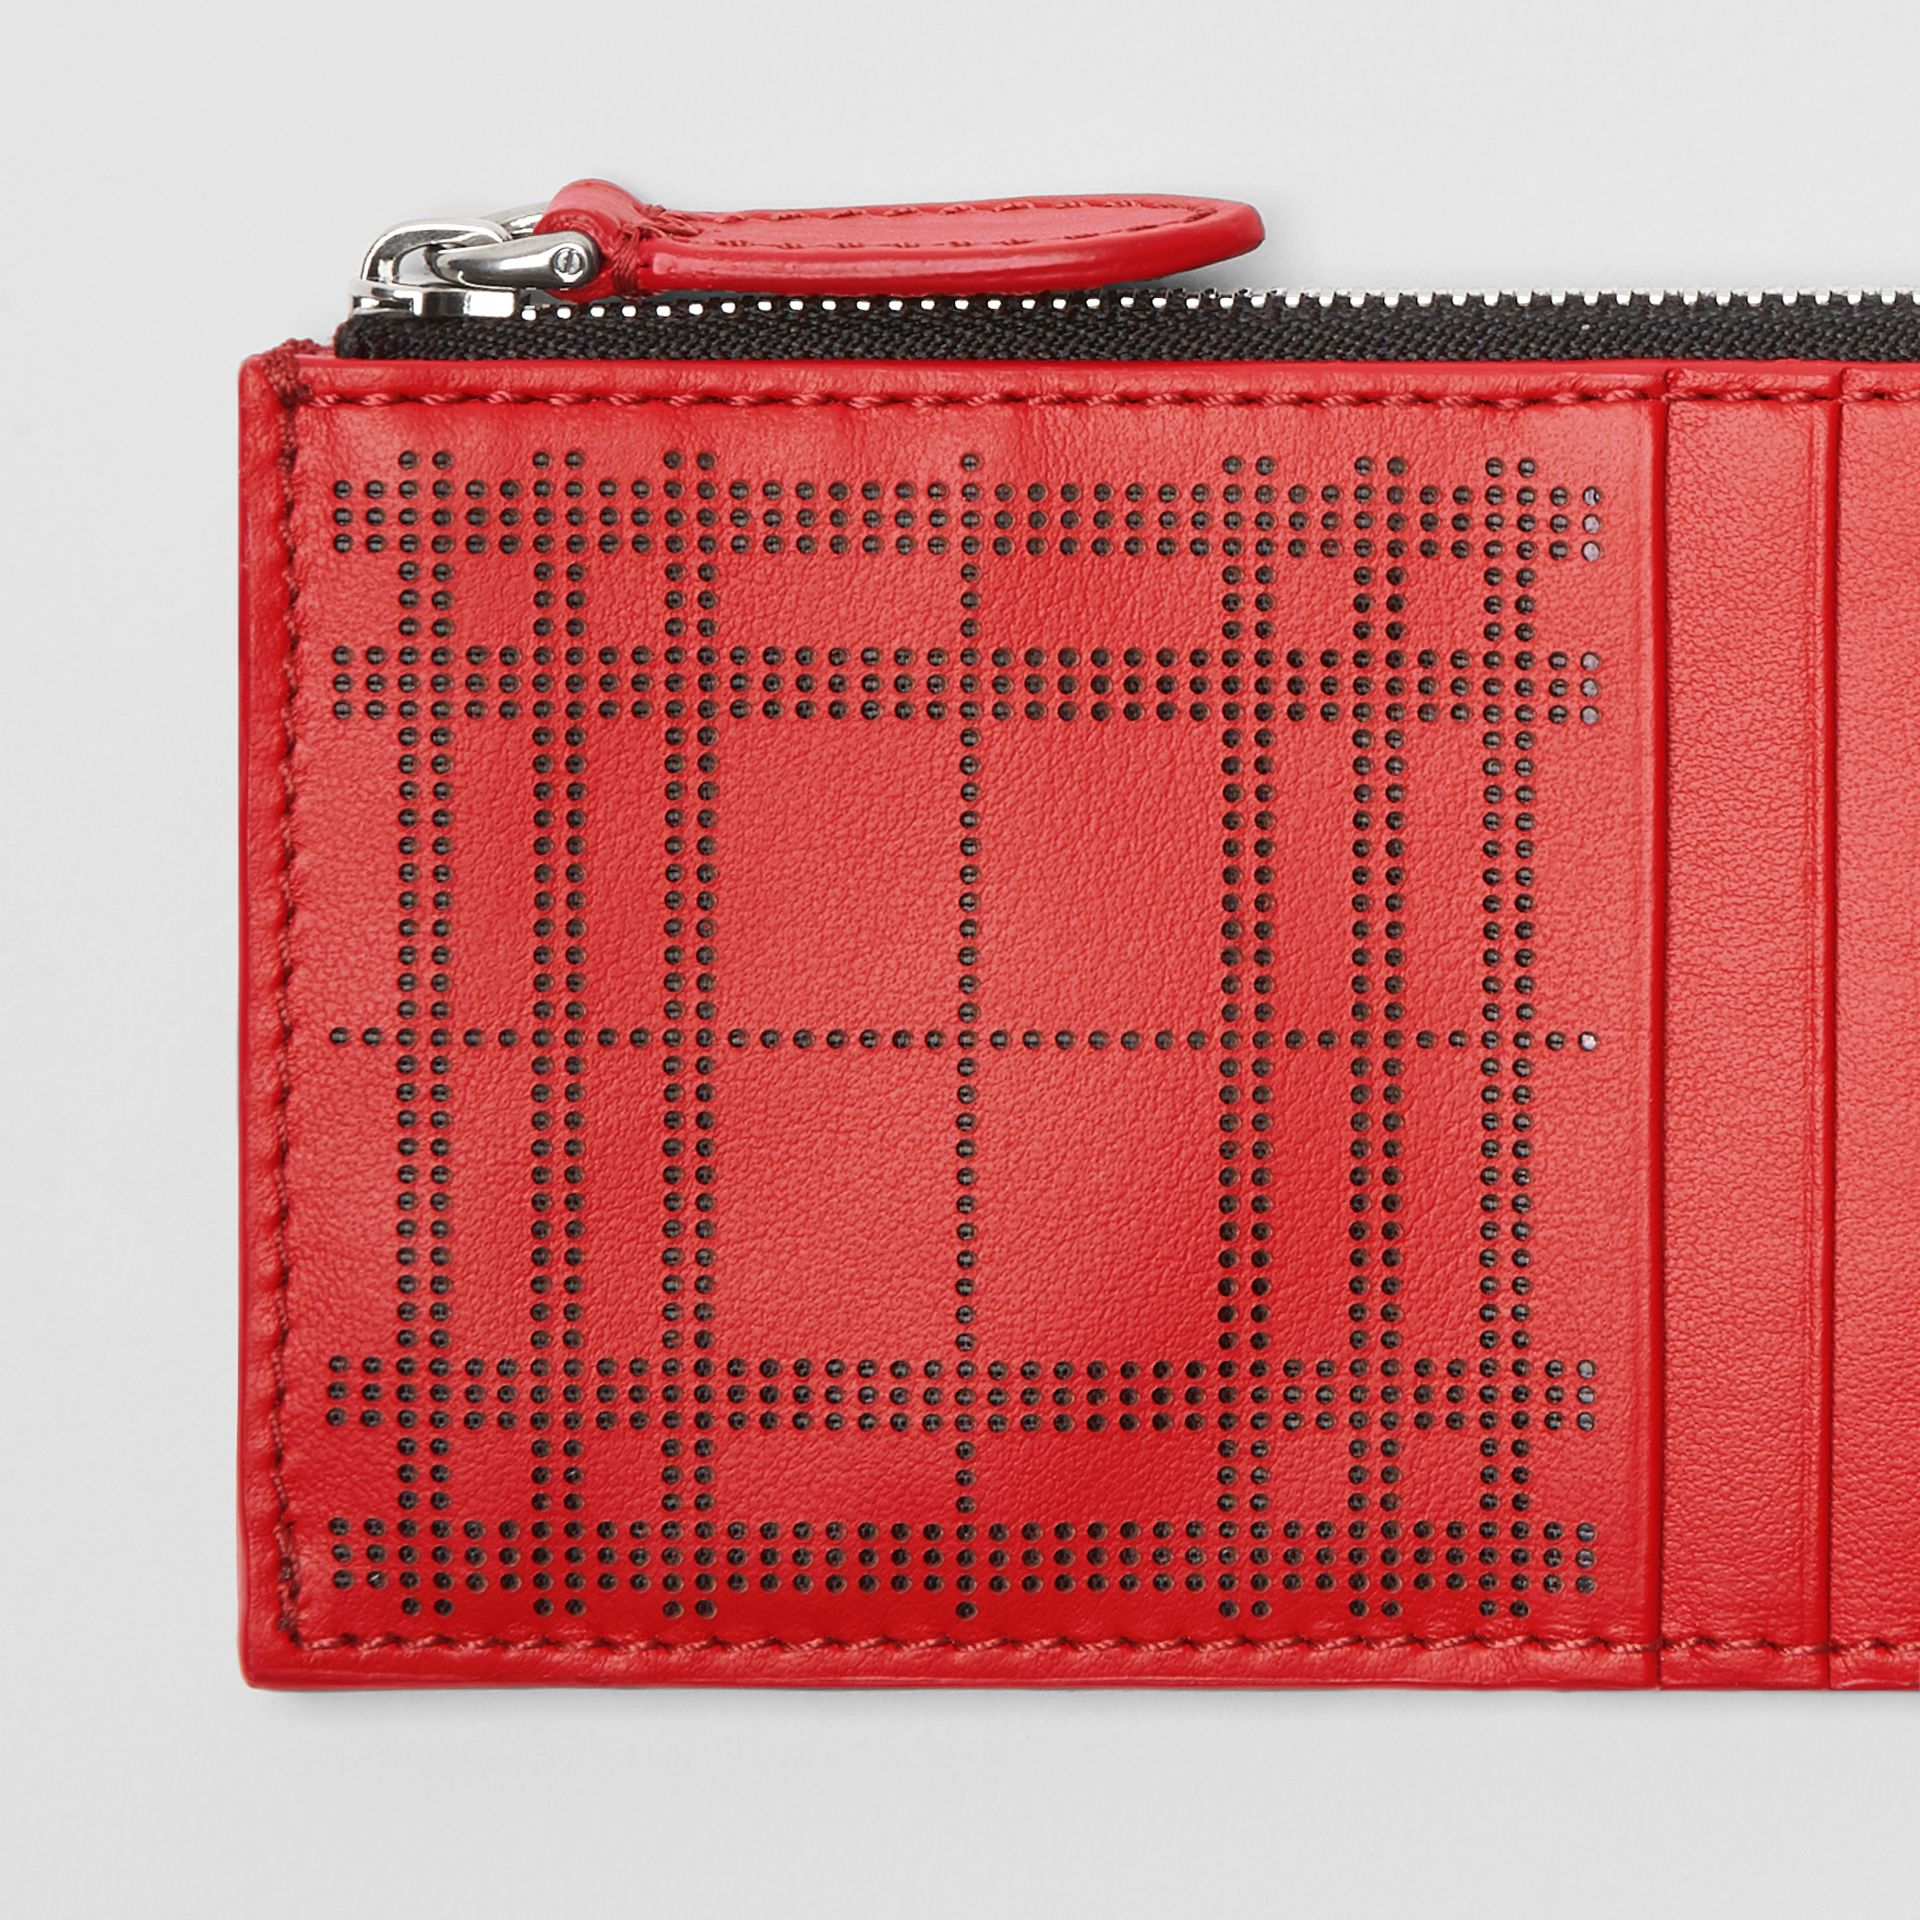 Porte-cartes zippé en cuir à motif check perforé (Rouge Rouille) - Homme | Burberry Canada - photo de la galerie 1